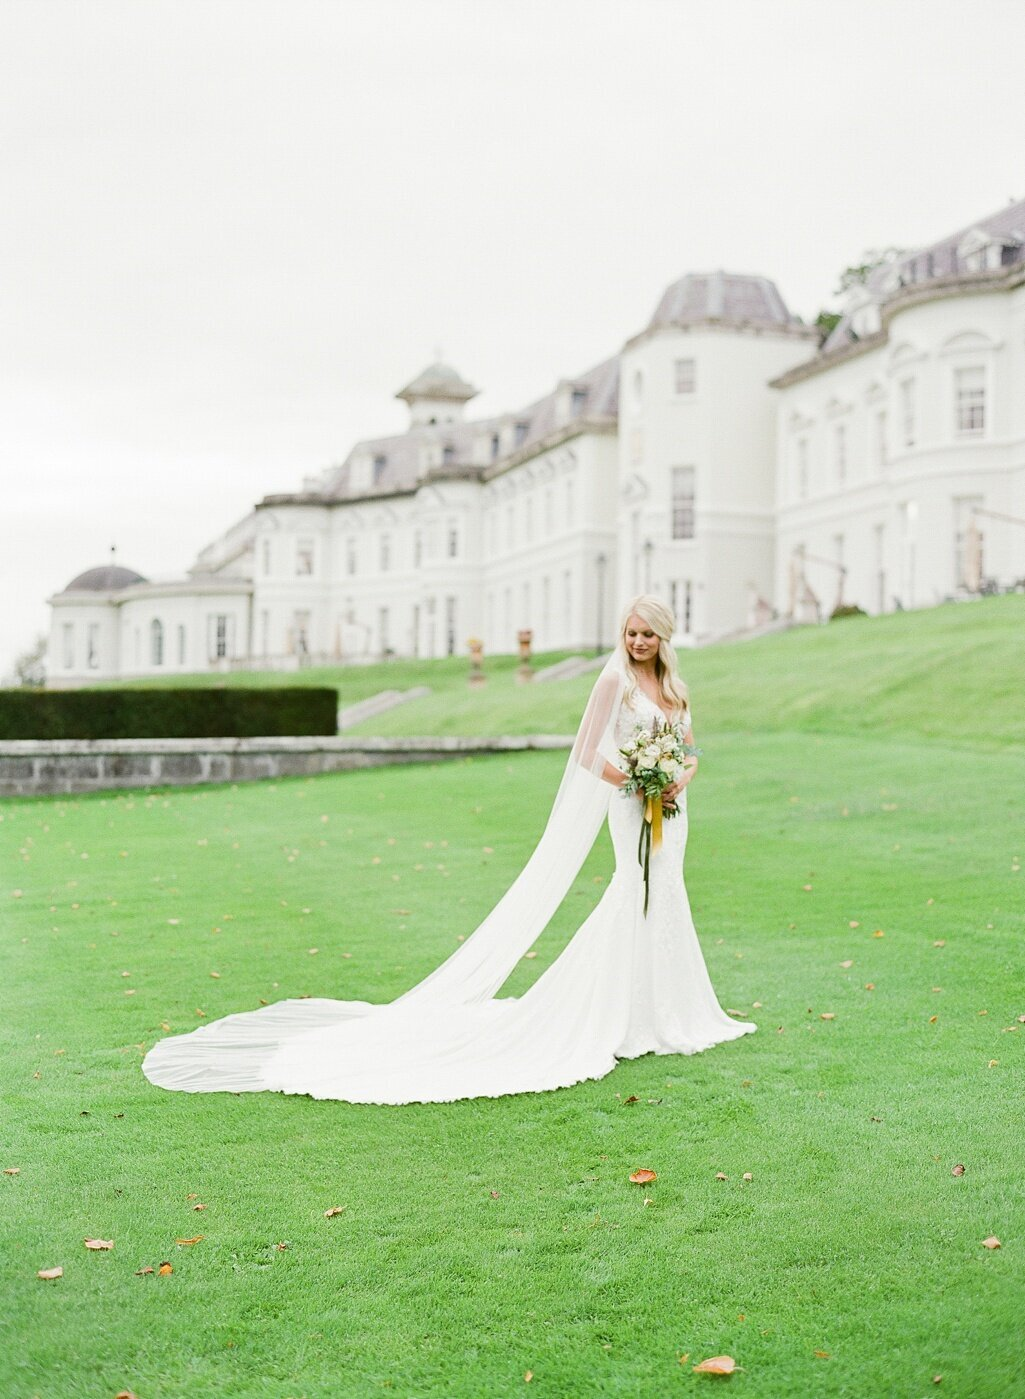 Jessie-Barksdale-Photography_K-Club-Ireland-Destination-Wedding-Photographer_0060